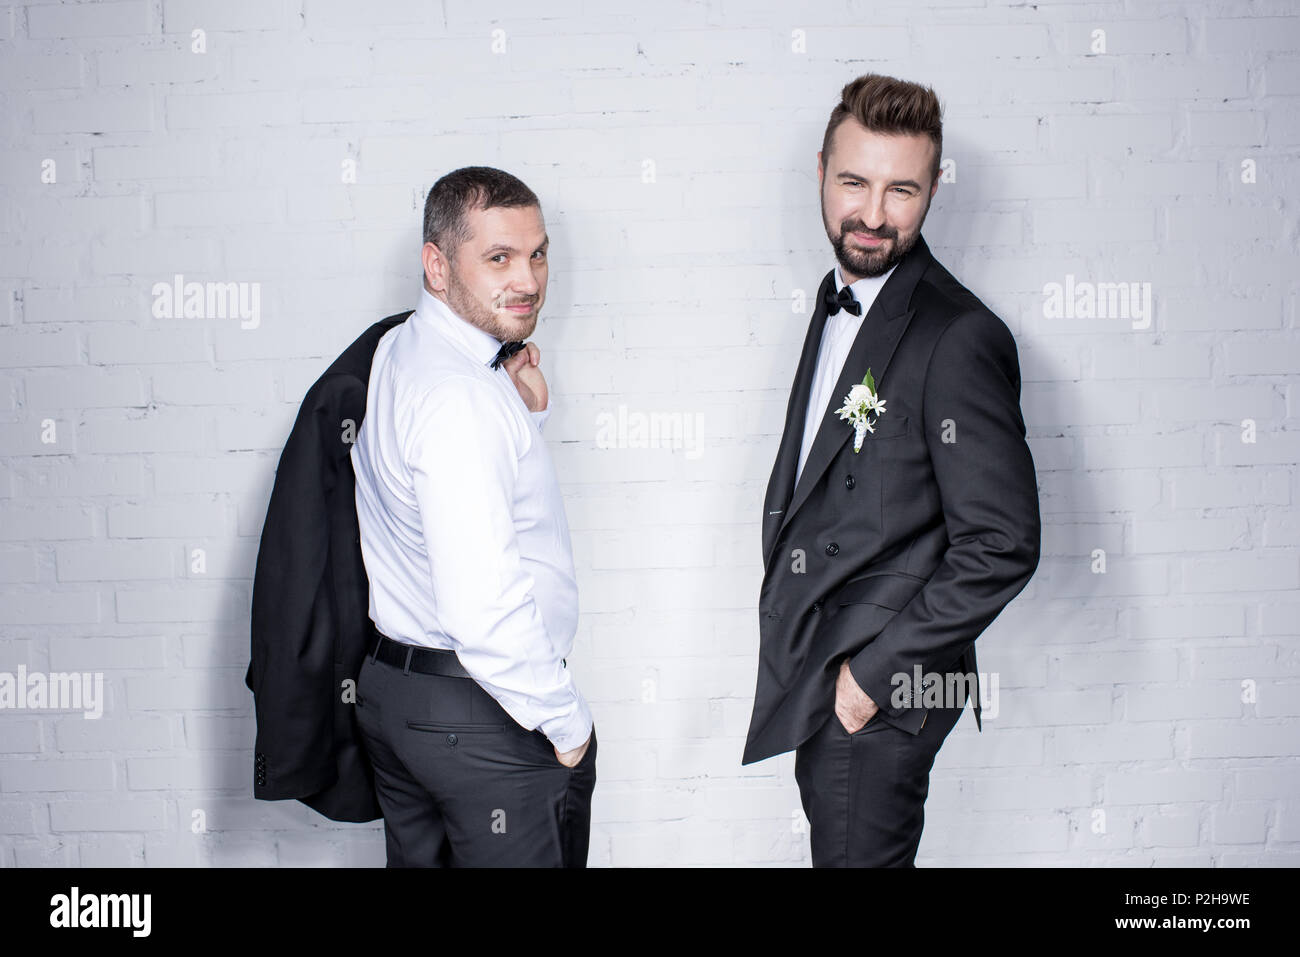 smiling couple of grooms in tuxedos posing during wedding day - Stock Image